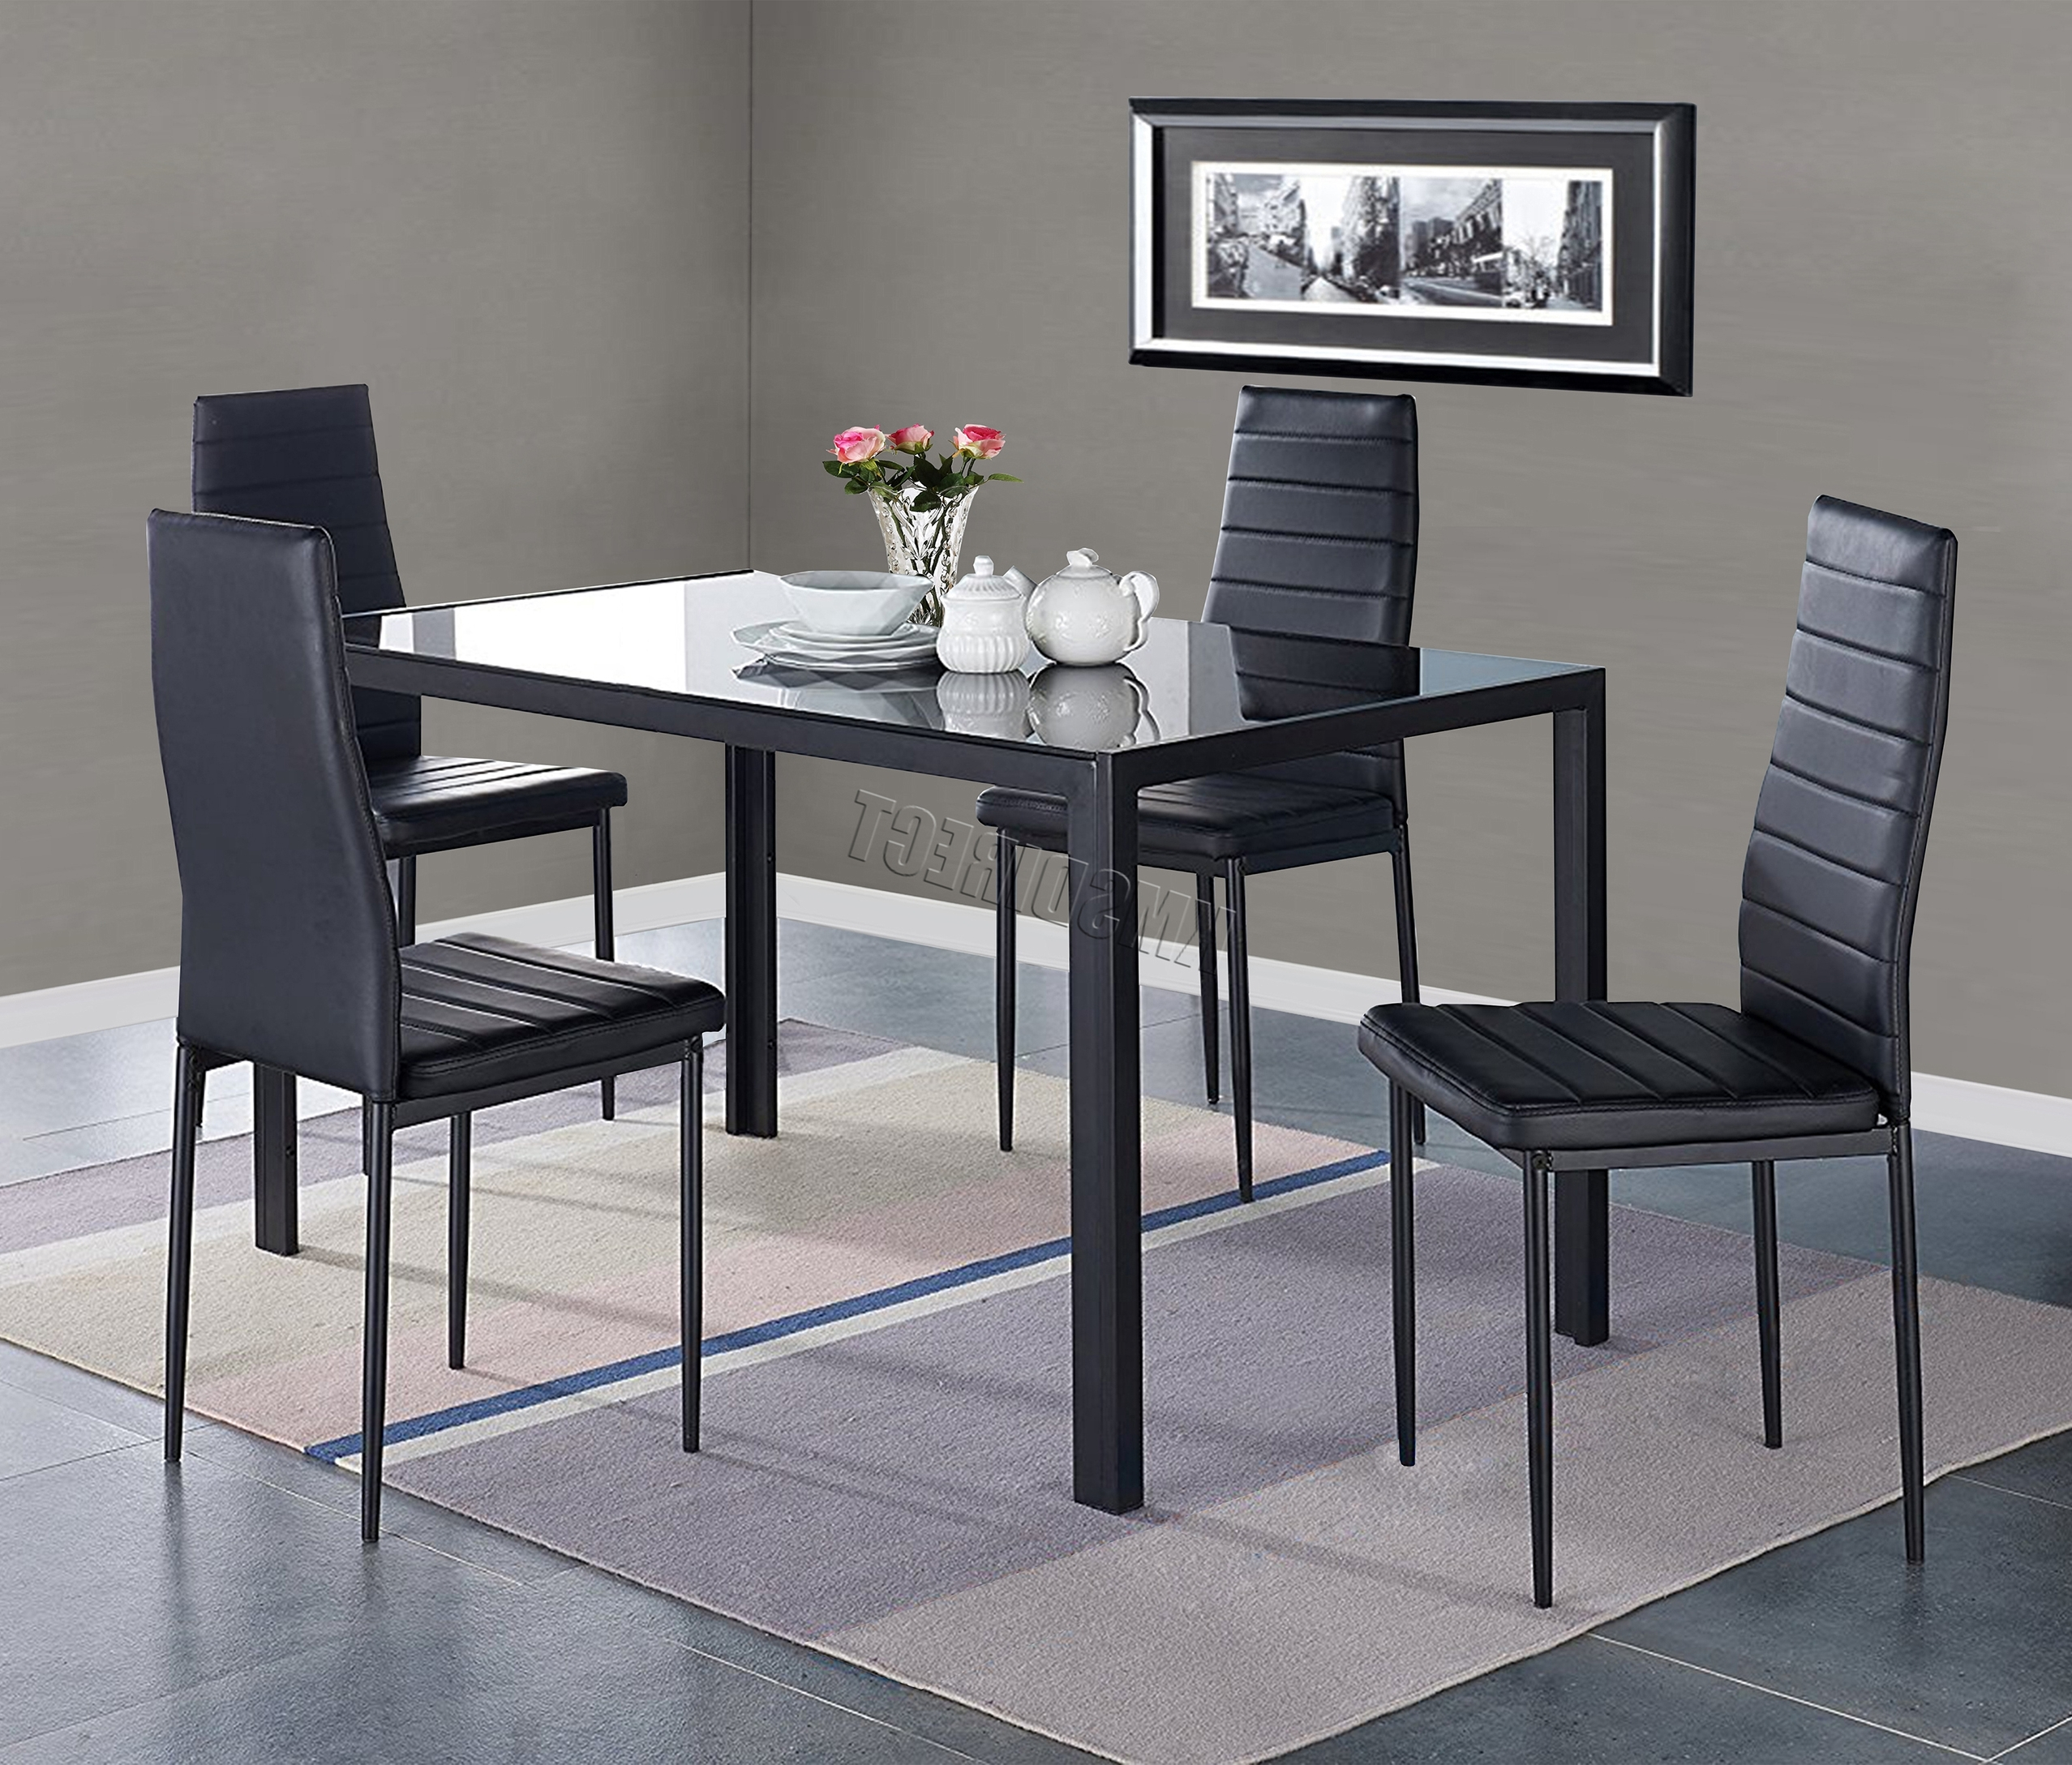 Well Liked Details About Westwood Glass Dining Table With 4 Chairs Faux Leather Dining Room Ds07 Black Within Black Glass Dining Tables And 4 Chairs (View 22 of 25)